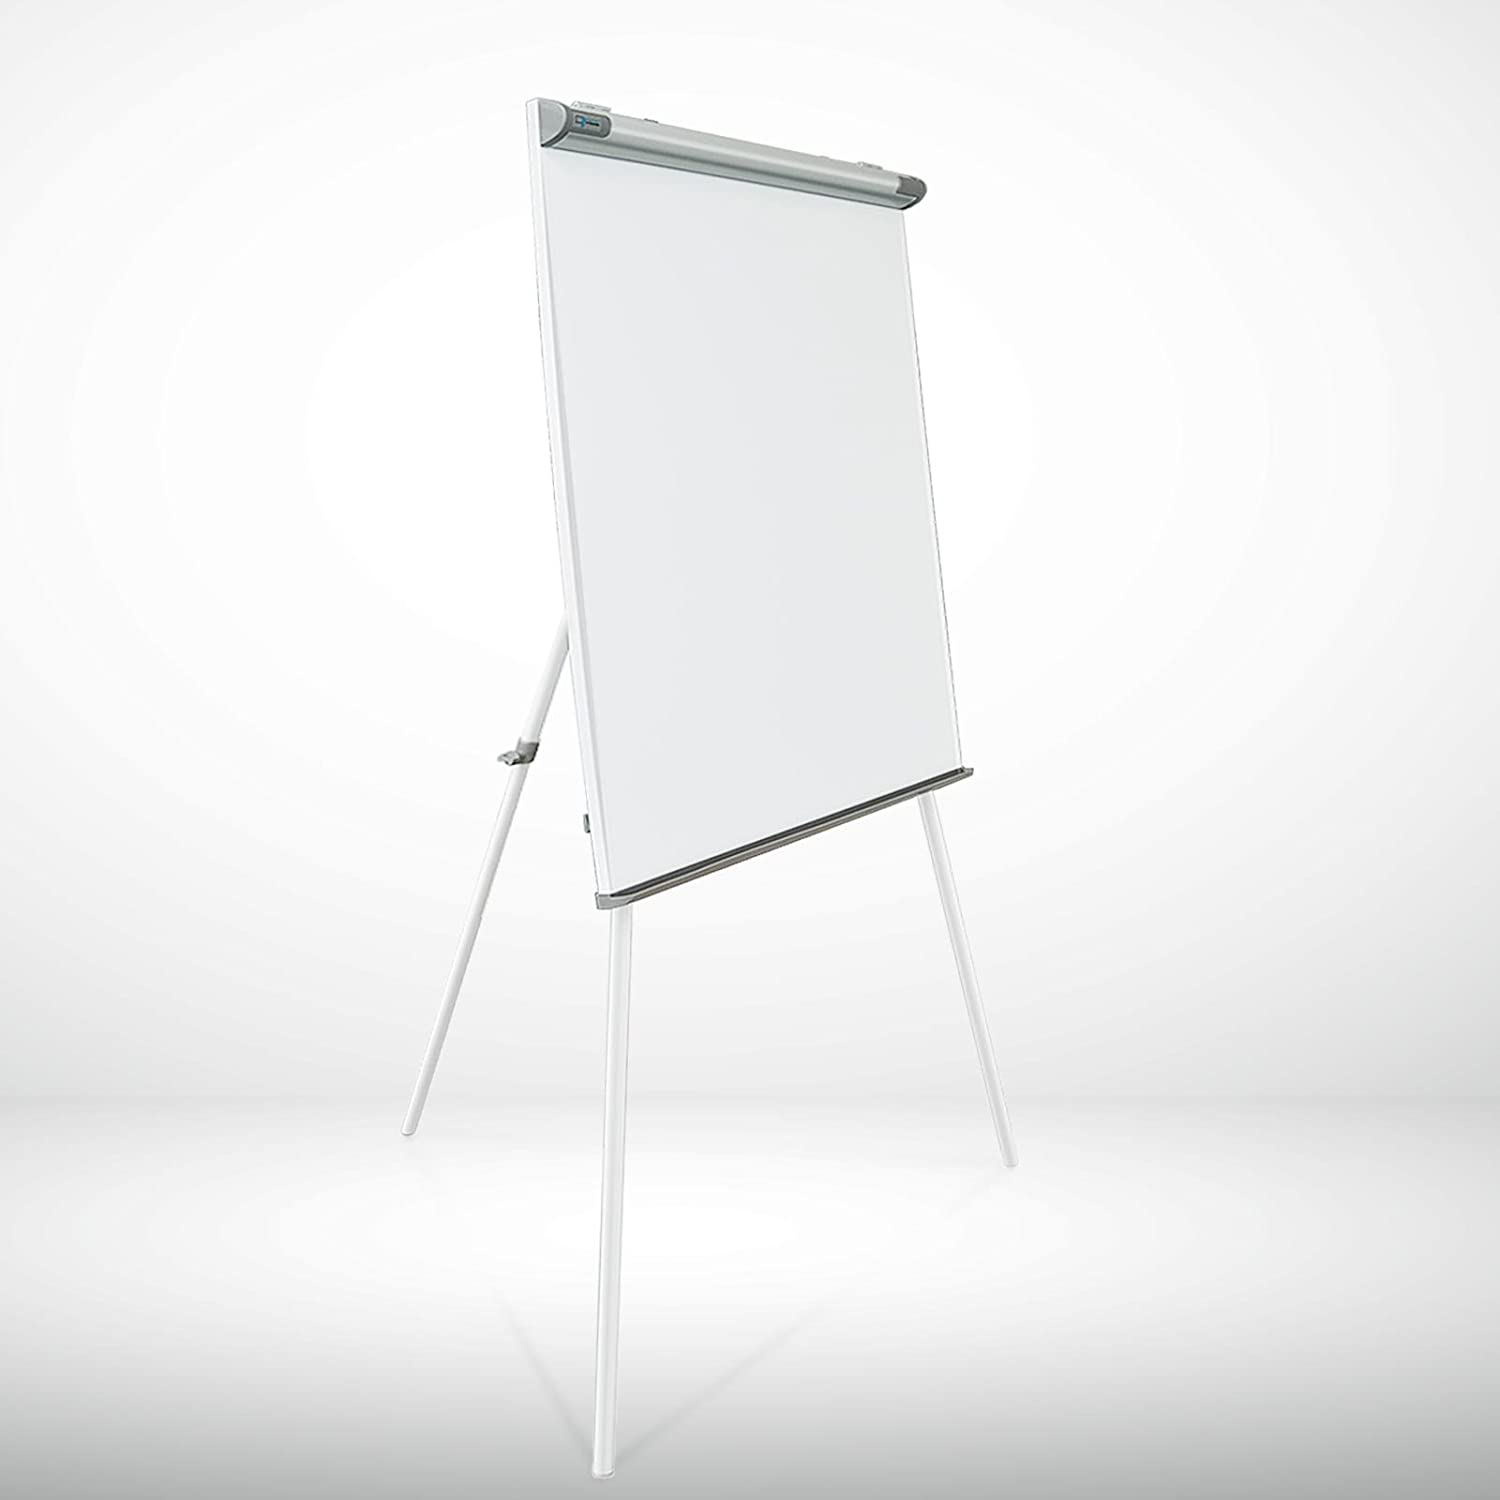 Master of Boards Flip Chart Easel - Dry Erase Easel Rolling White board on Wheels | Easy Setup | Magnetic | 26x41 4058171033903